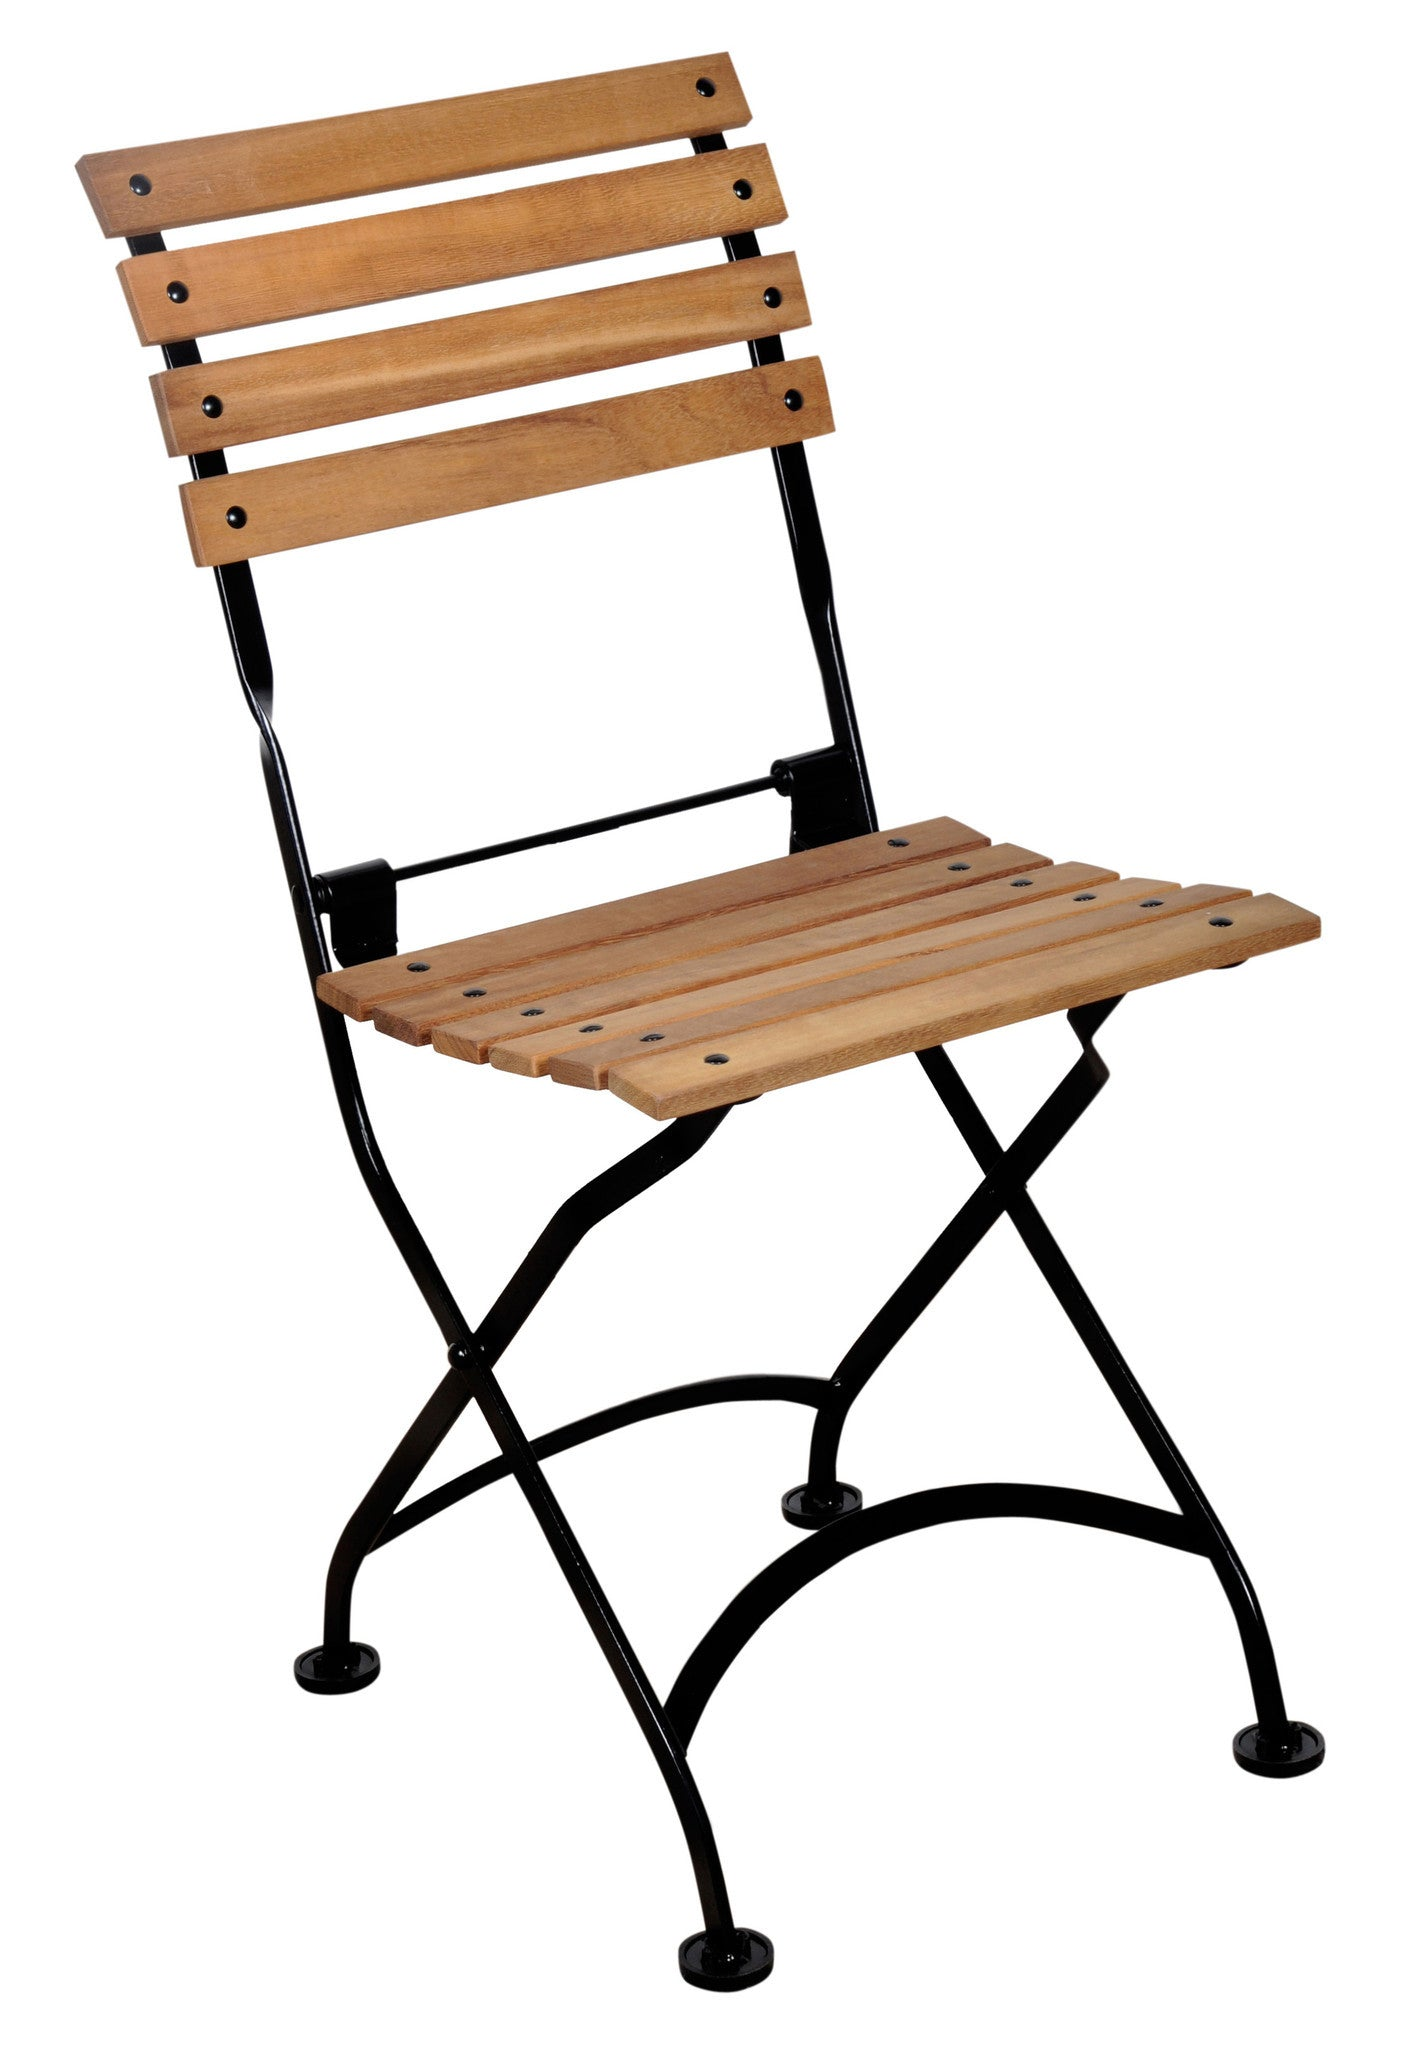 Buy French Bistro Chair folding with Teak Wood Slats from